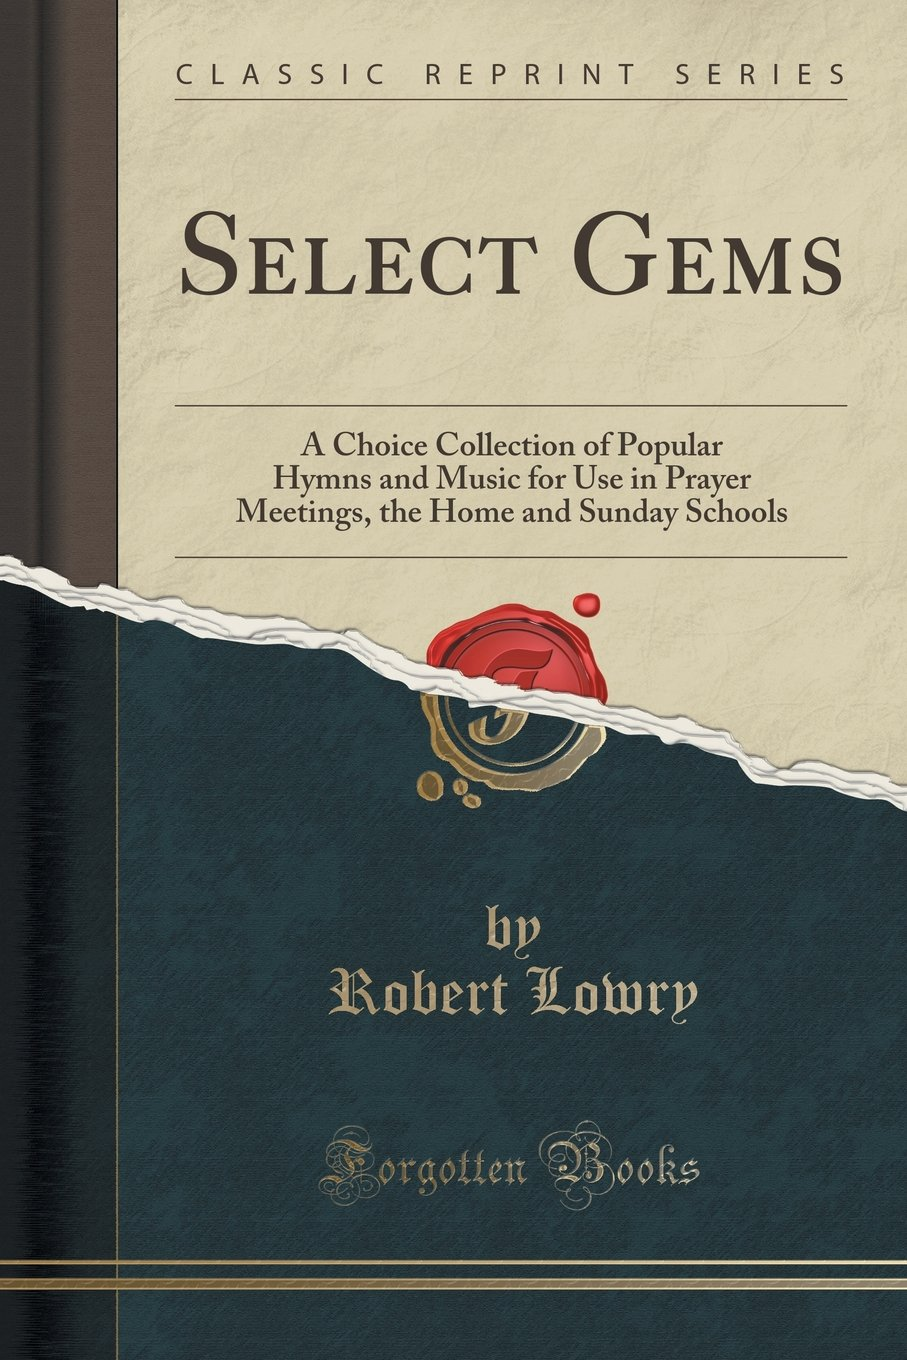 Select Gems: A Choice Collection of Popular Hymns and Music for Use in Prayer Meetings, the Home and Sunday Schools (Classic Reprint) ebook